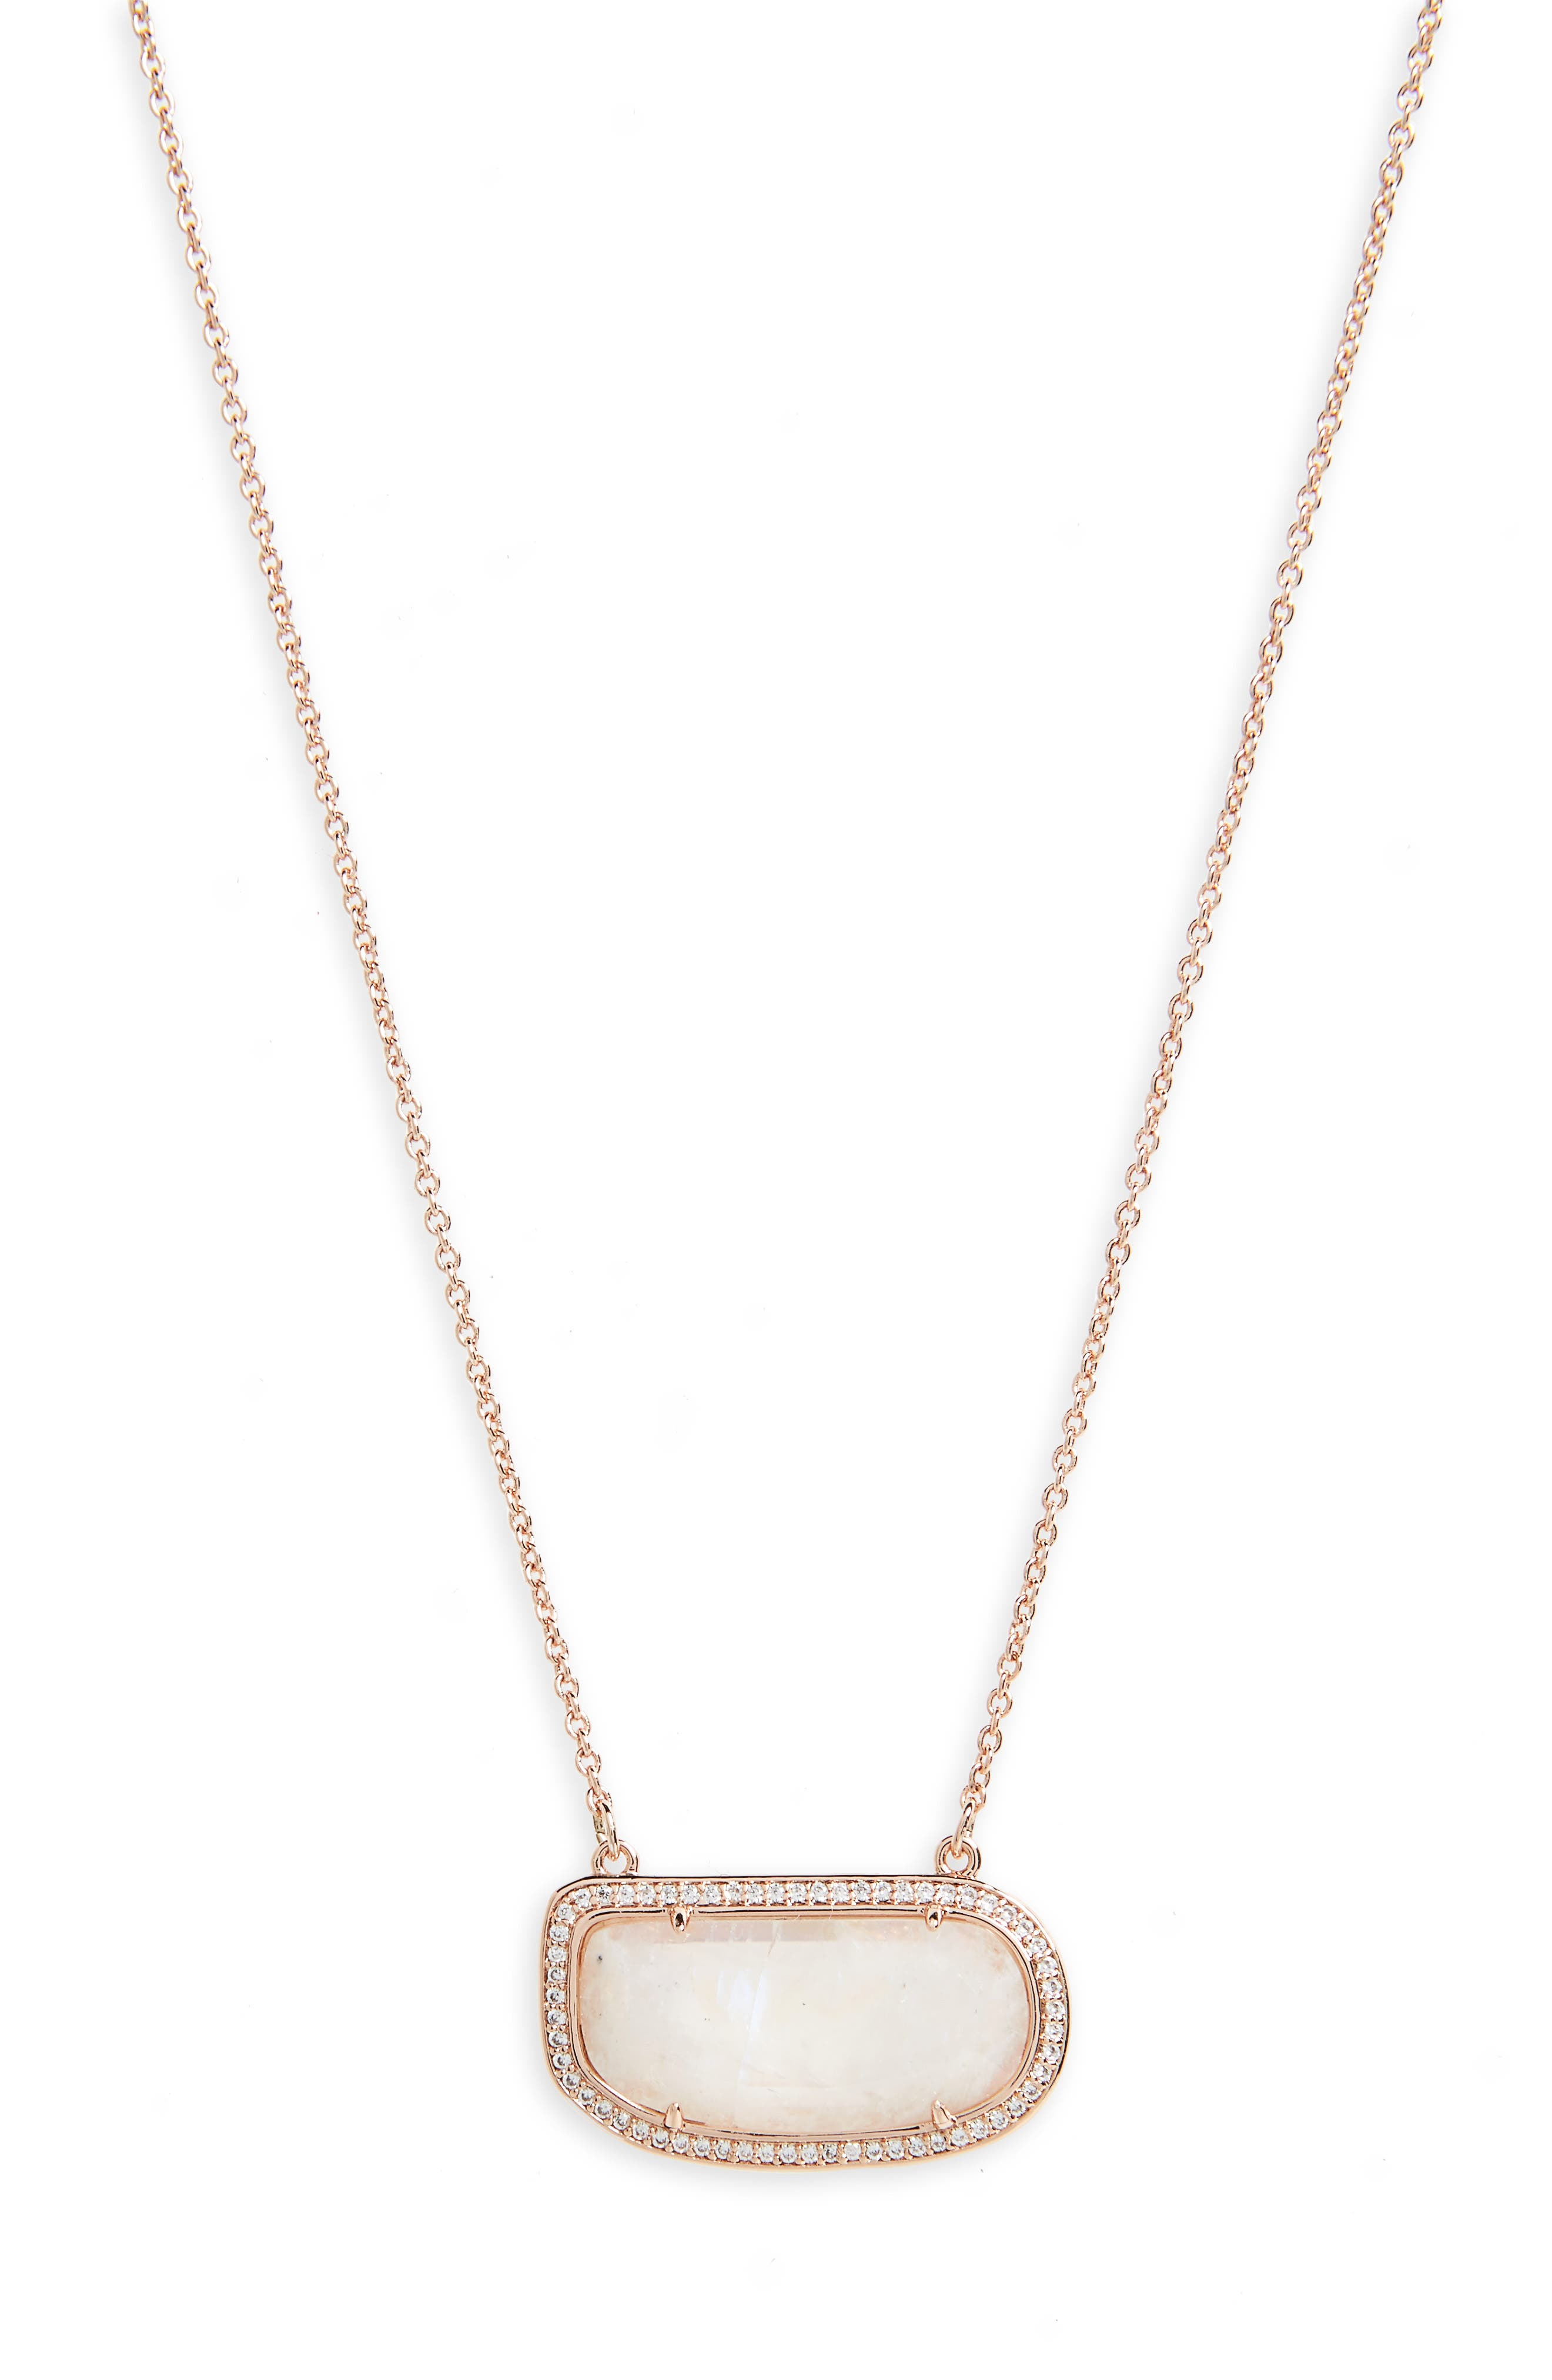 Moonstone Slice Necklace,                             Main thumbnail 1, color,                             Moonstone/ Rose Gold